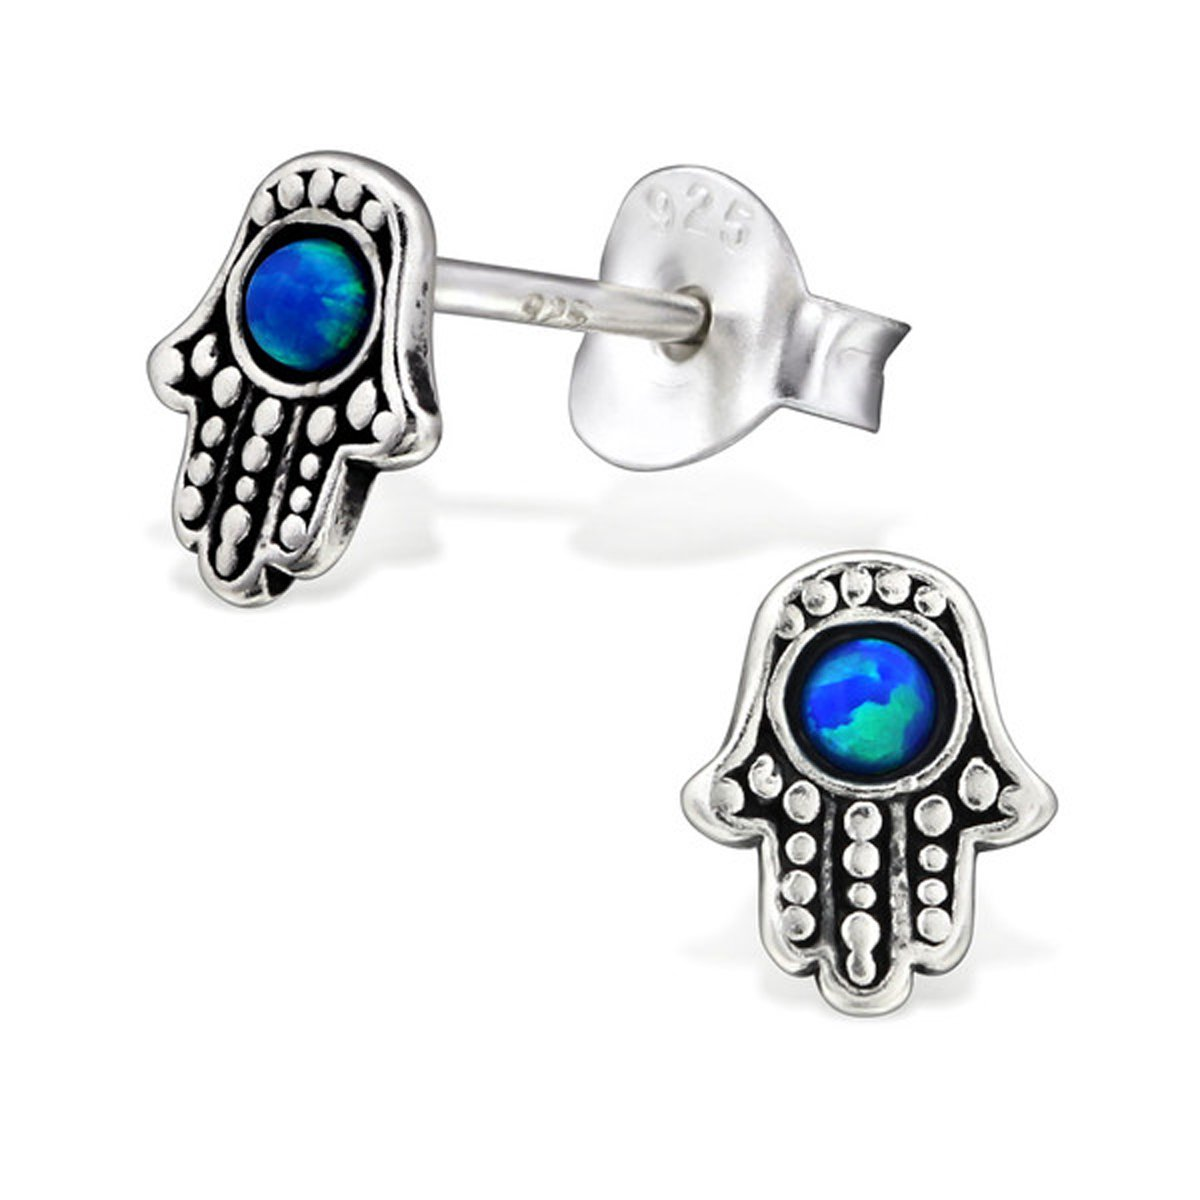 Small Hamsa Hand Blue Synthetic Opal Silver Studs Earrings Chamsa Antique Style Stering Silver 925 Post Studs (29623 Pacific Blue 5x6 mm)